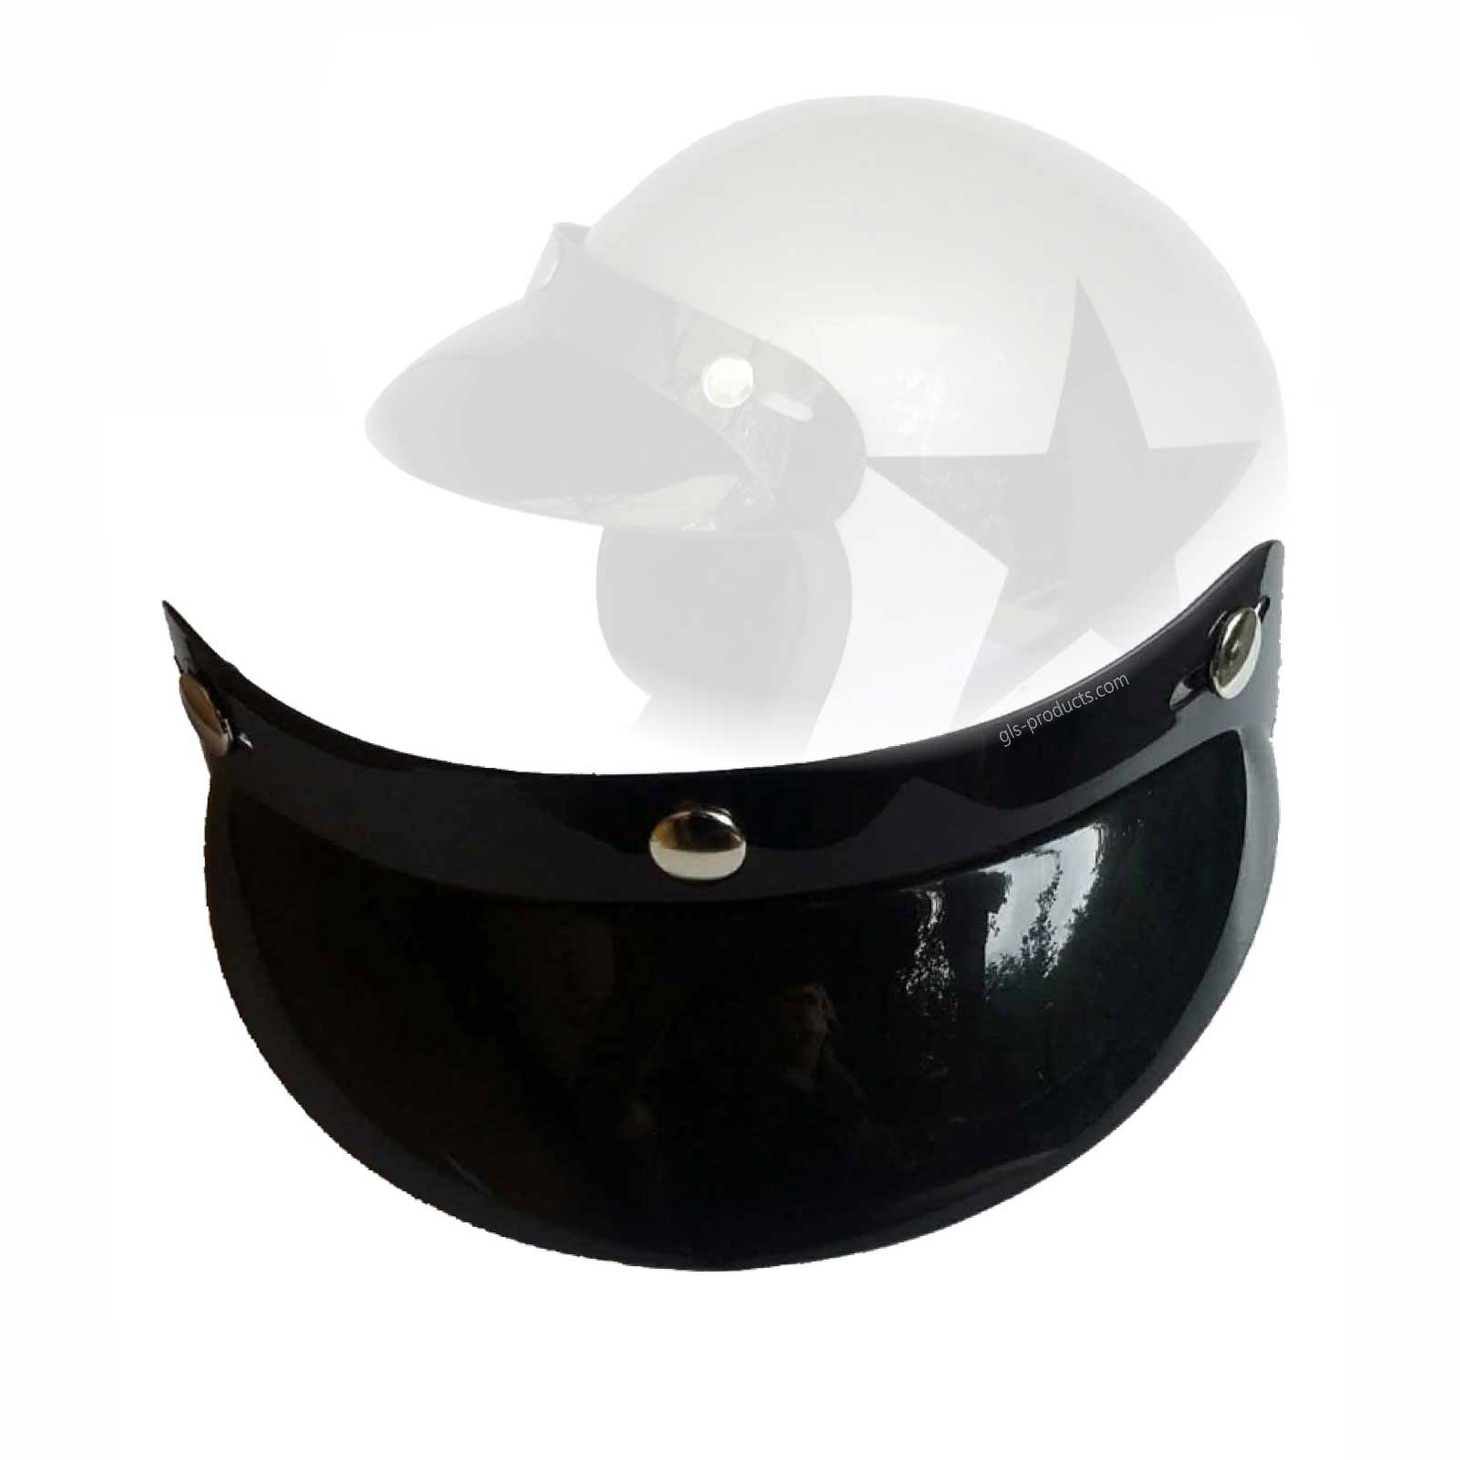 Bandit Helmets Sun Peak - sunshade for jet helmets – Picture 3